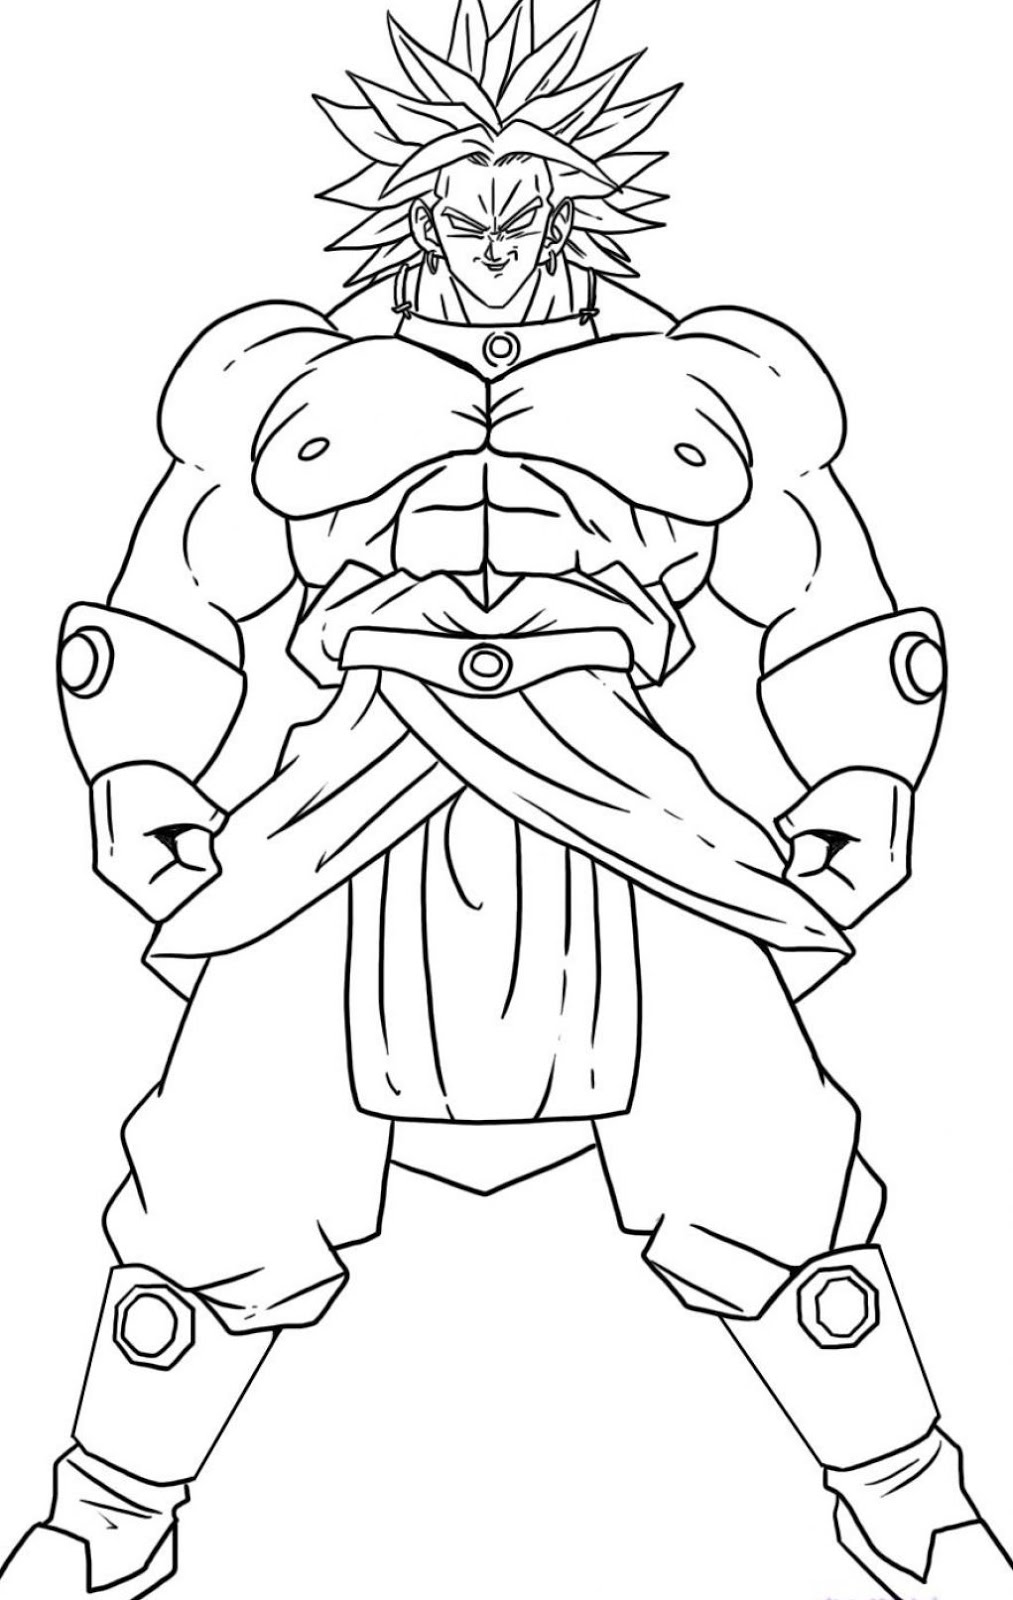 Dragon ball z drawing pictures drawing pictures for Dbz coloring pages